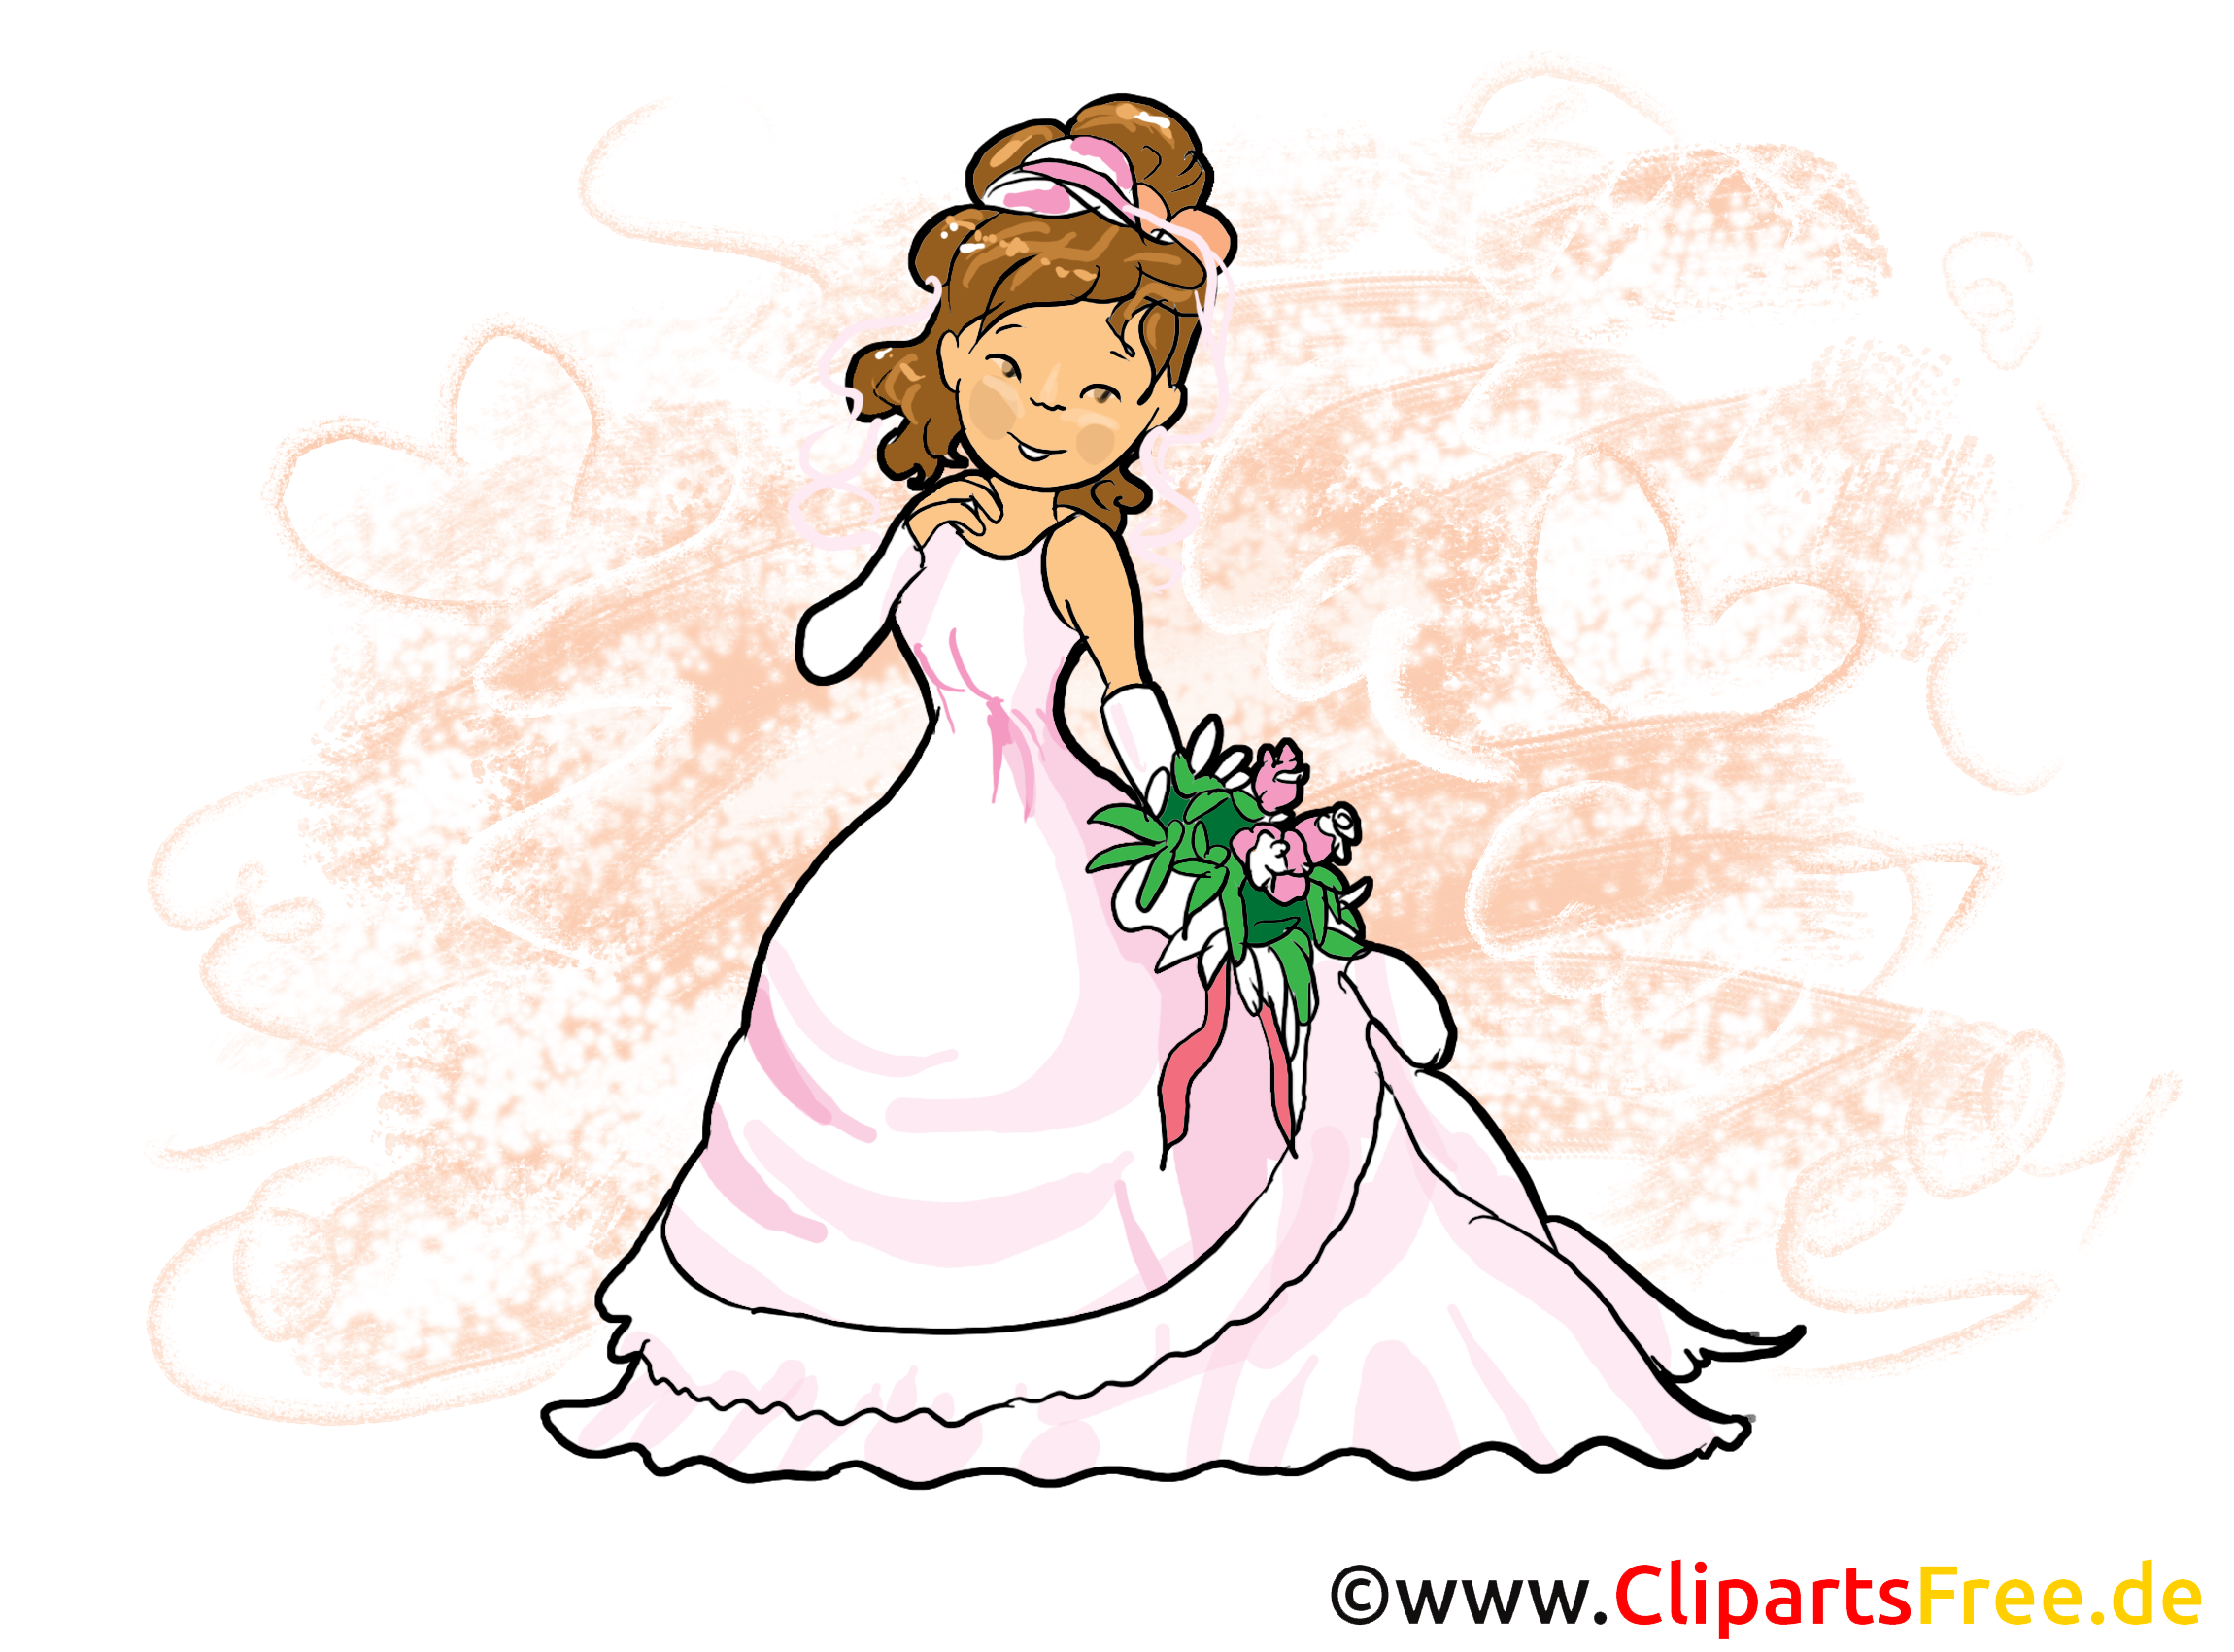 Fiancee clipart - Clipground